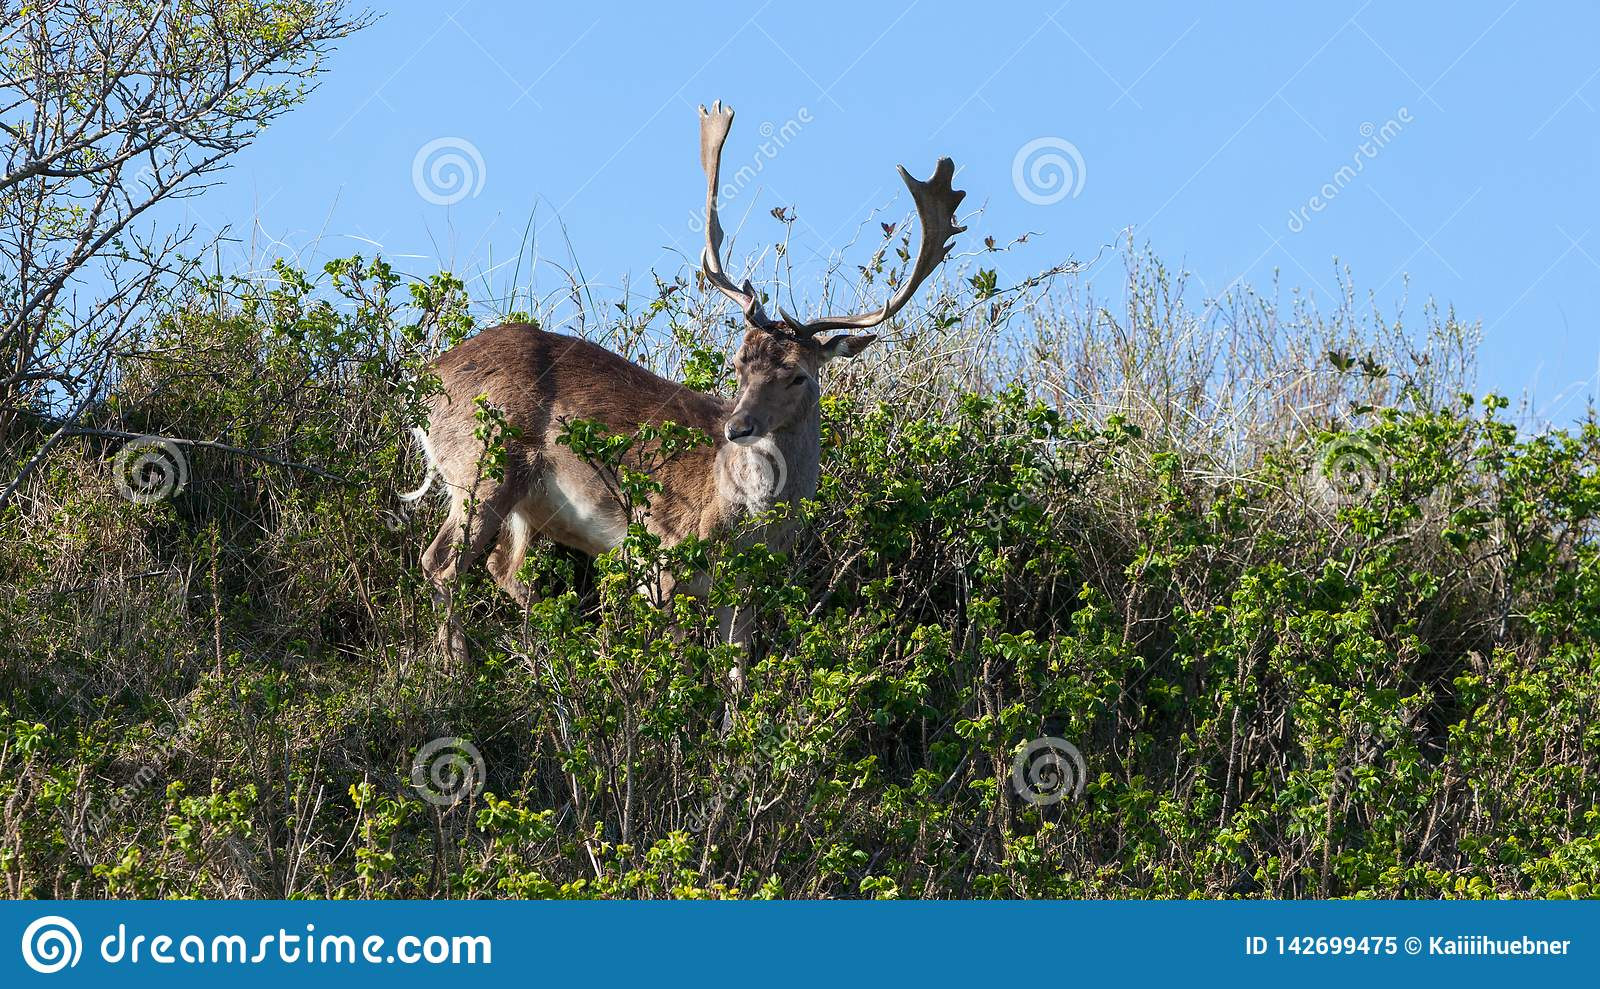 Beautiful brown spotted fallow deer standing between bushes on a dune.